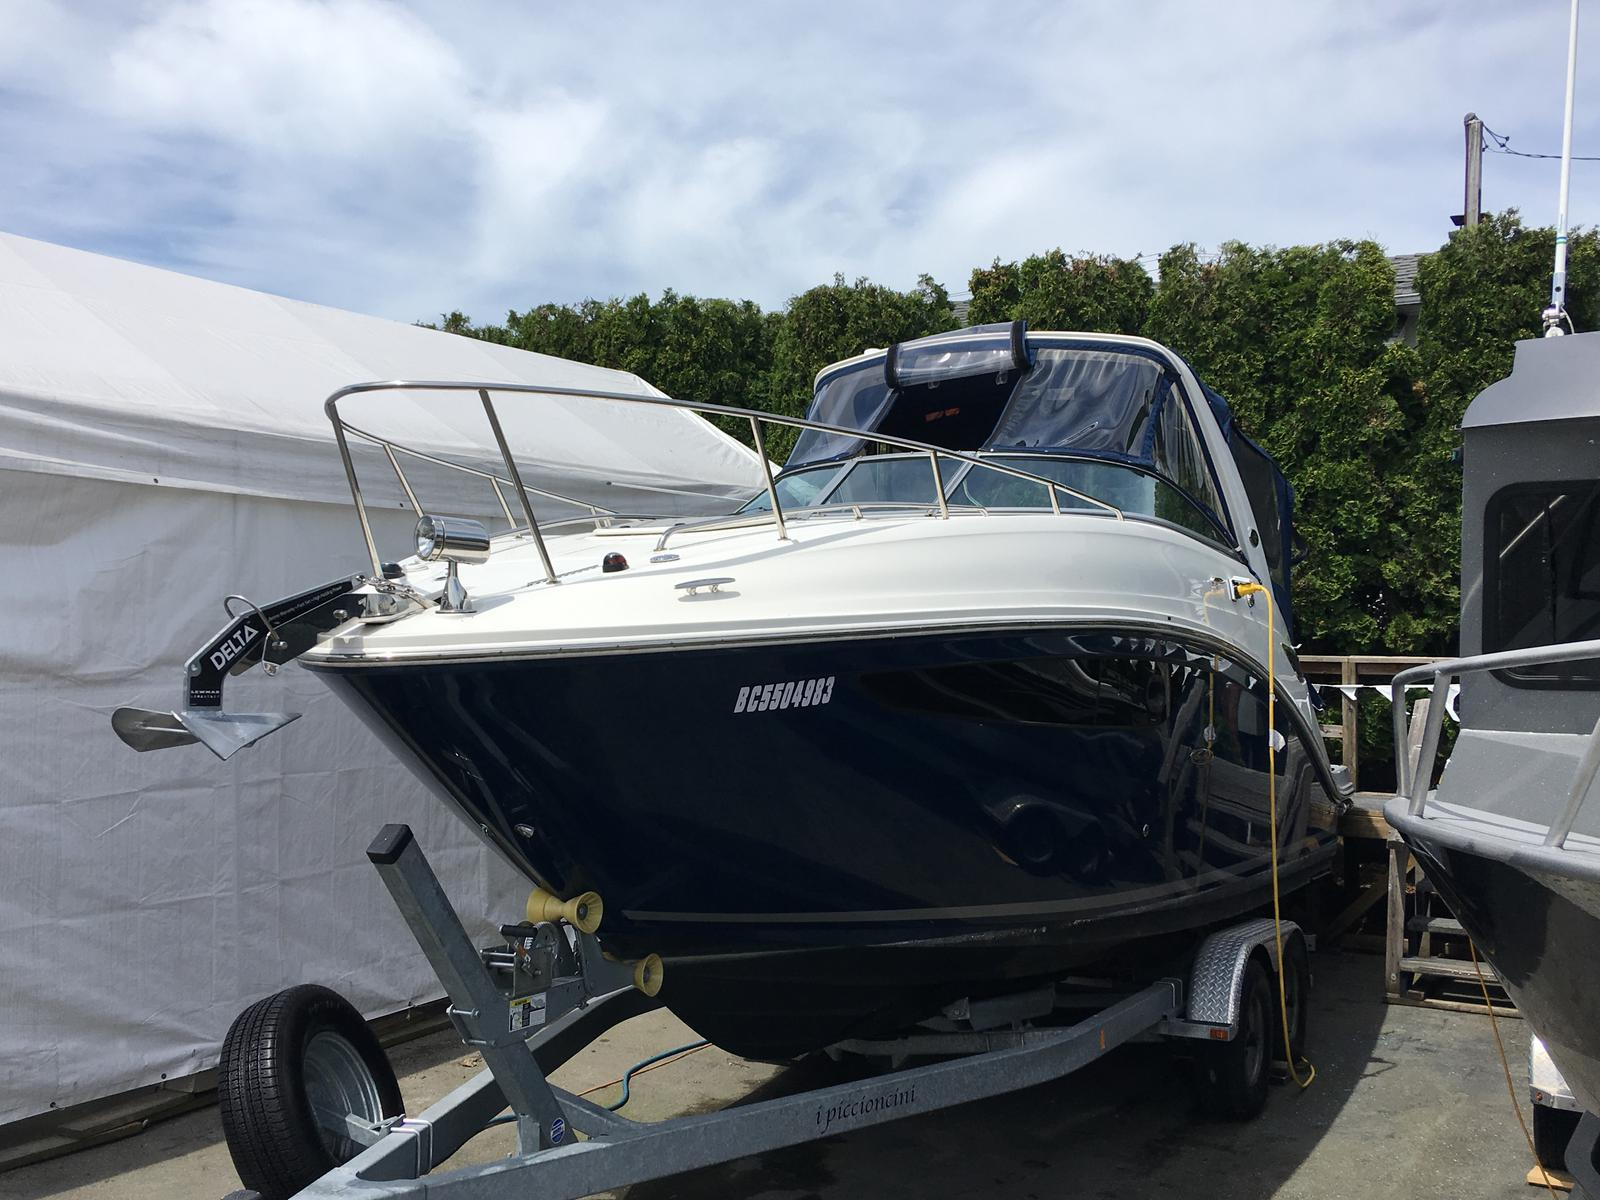 Used Sea Ray Boats For Sale In Canada - Page 1 of 5 | Boat Buys